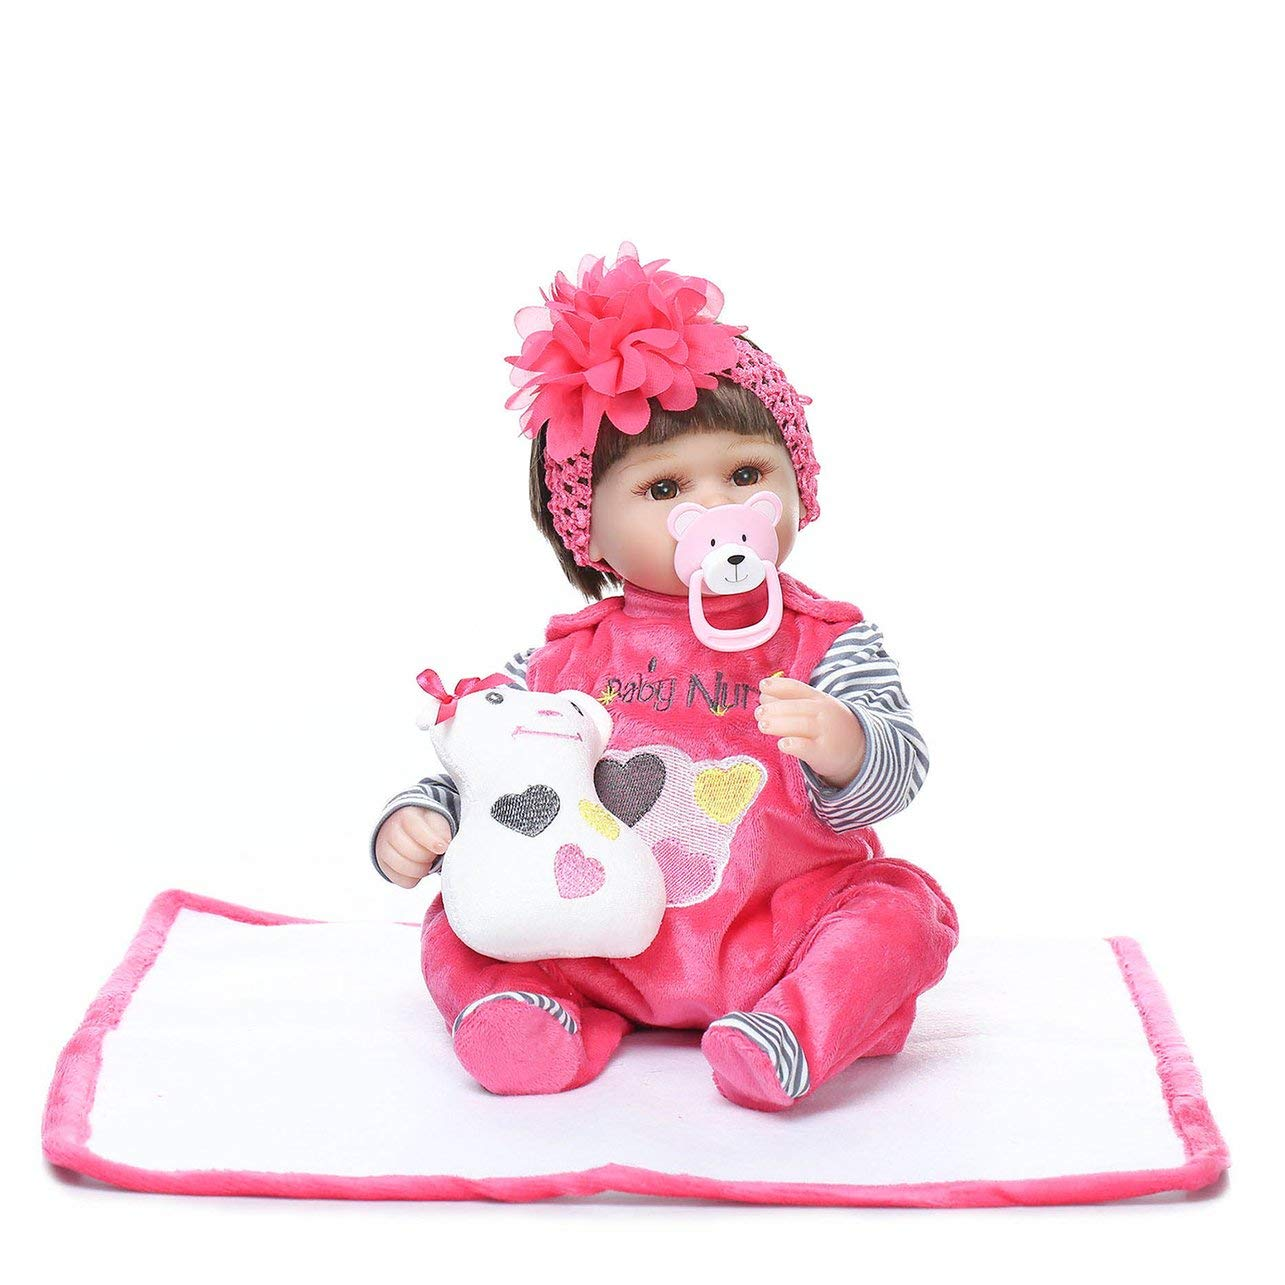 Cute Lovely Girls Realistico Realistico Silicone Reborn Baby Doll